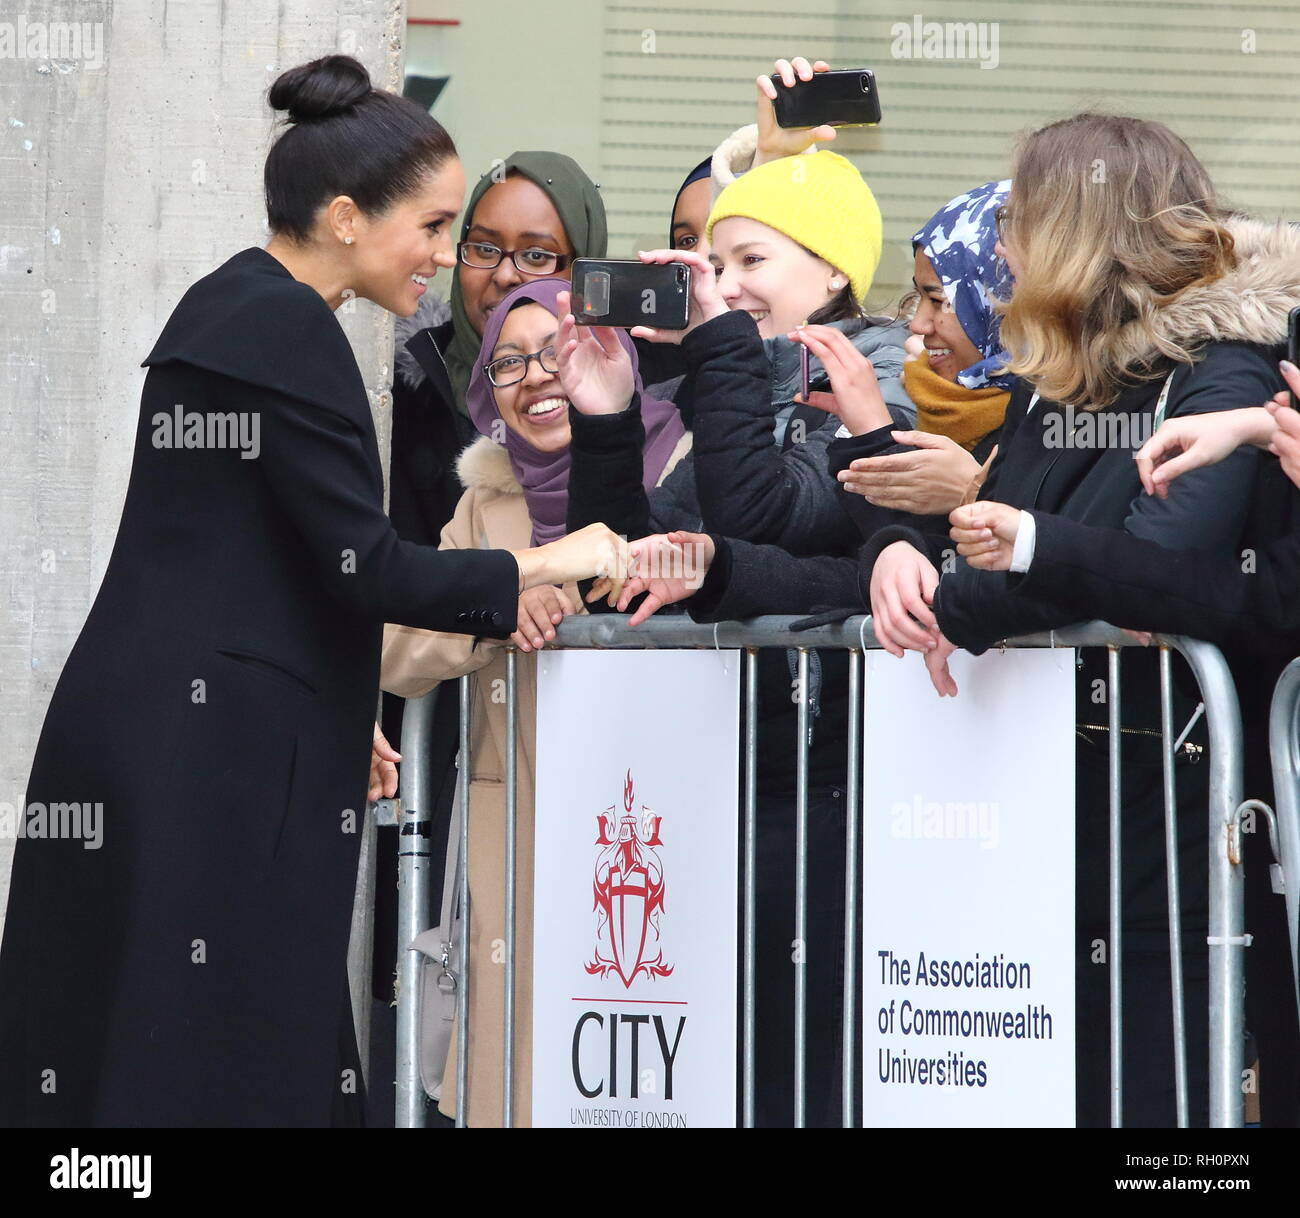 London, UK. 31st Jan, 2019. The Duchess of Sussex attended an engagement with the Association of Commonwealth Universities (ACU) in London to meet with students and academics from across the ACU's network. This will be Her Royal Highness's first official visit with the ACU in her new role as Patron Credit: Keith Mayhew/SOPA Images/ZUMA Wire/Alamy Live News - Stock Image